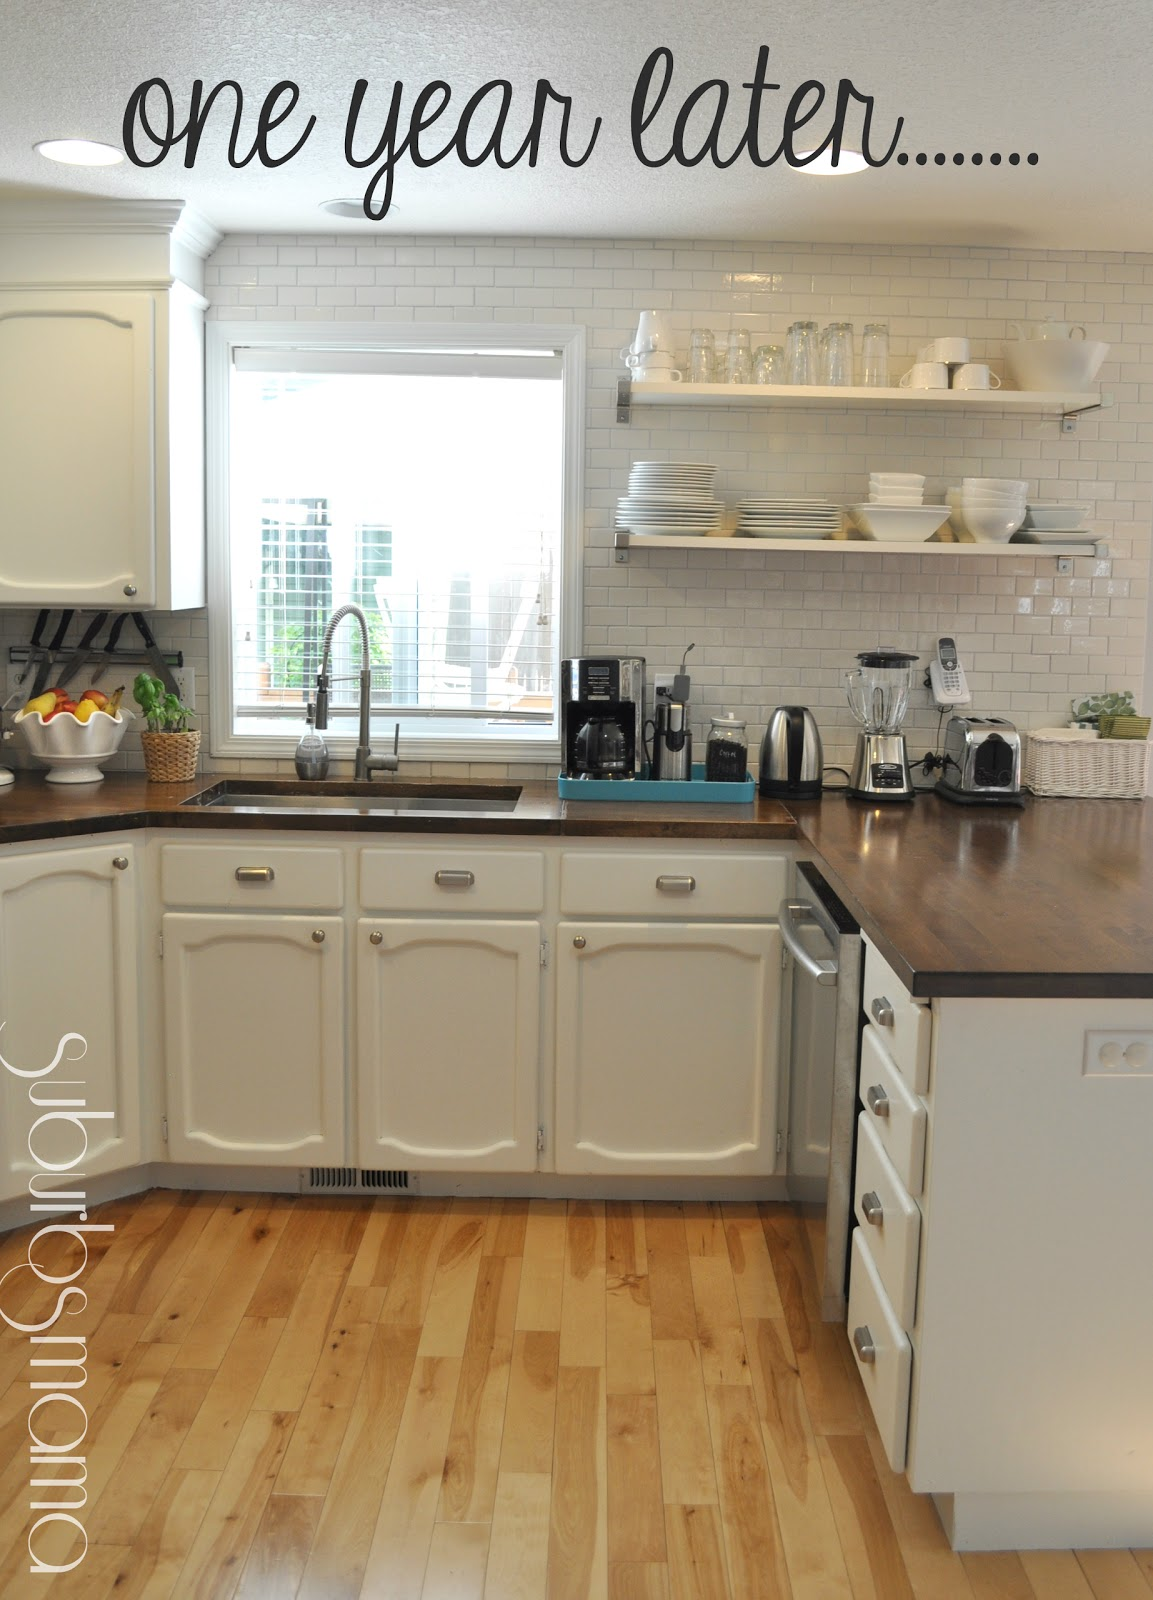 Kitchen Butcher Block Cabinets : Suburbs Mama: Kitchen Update One Year Later (white cabinets and butcher block counters)